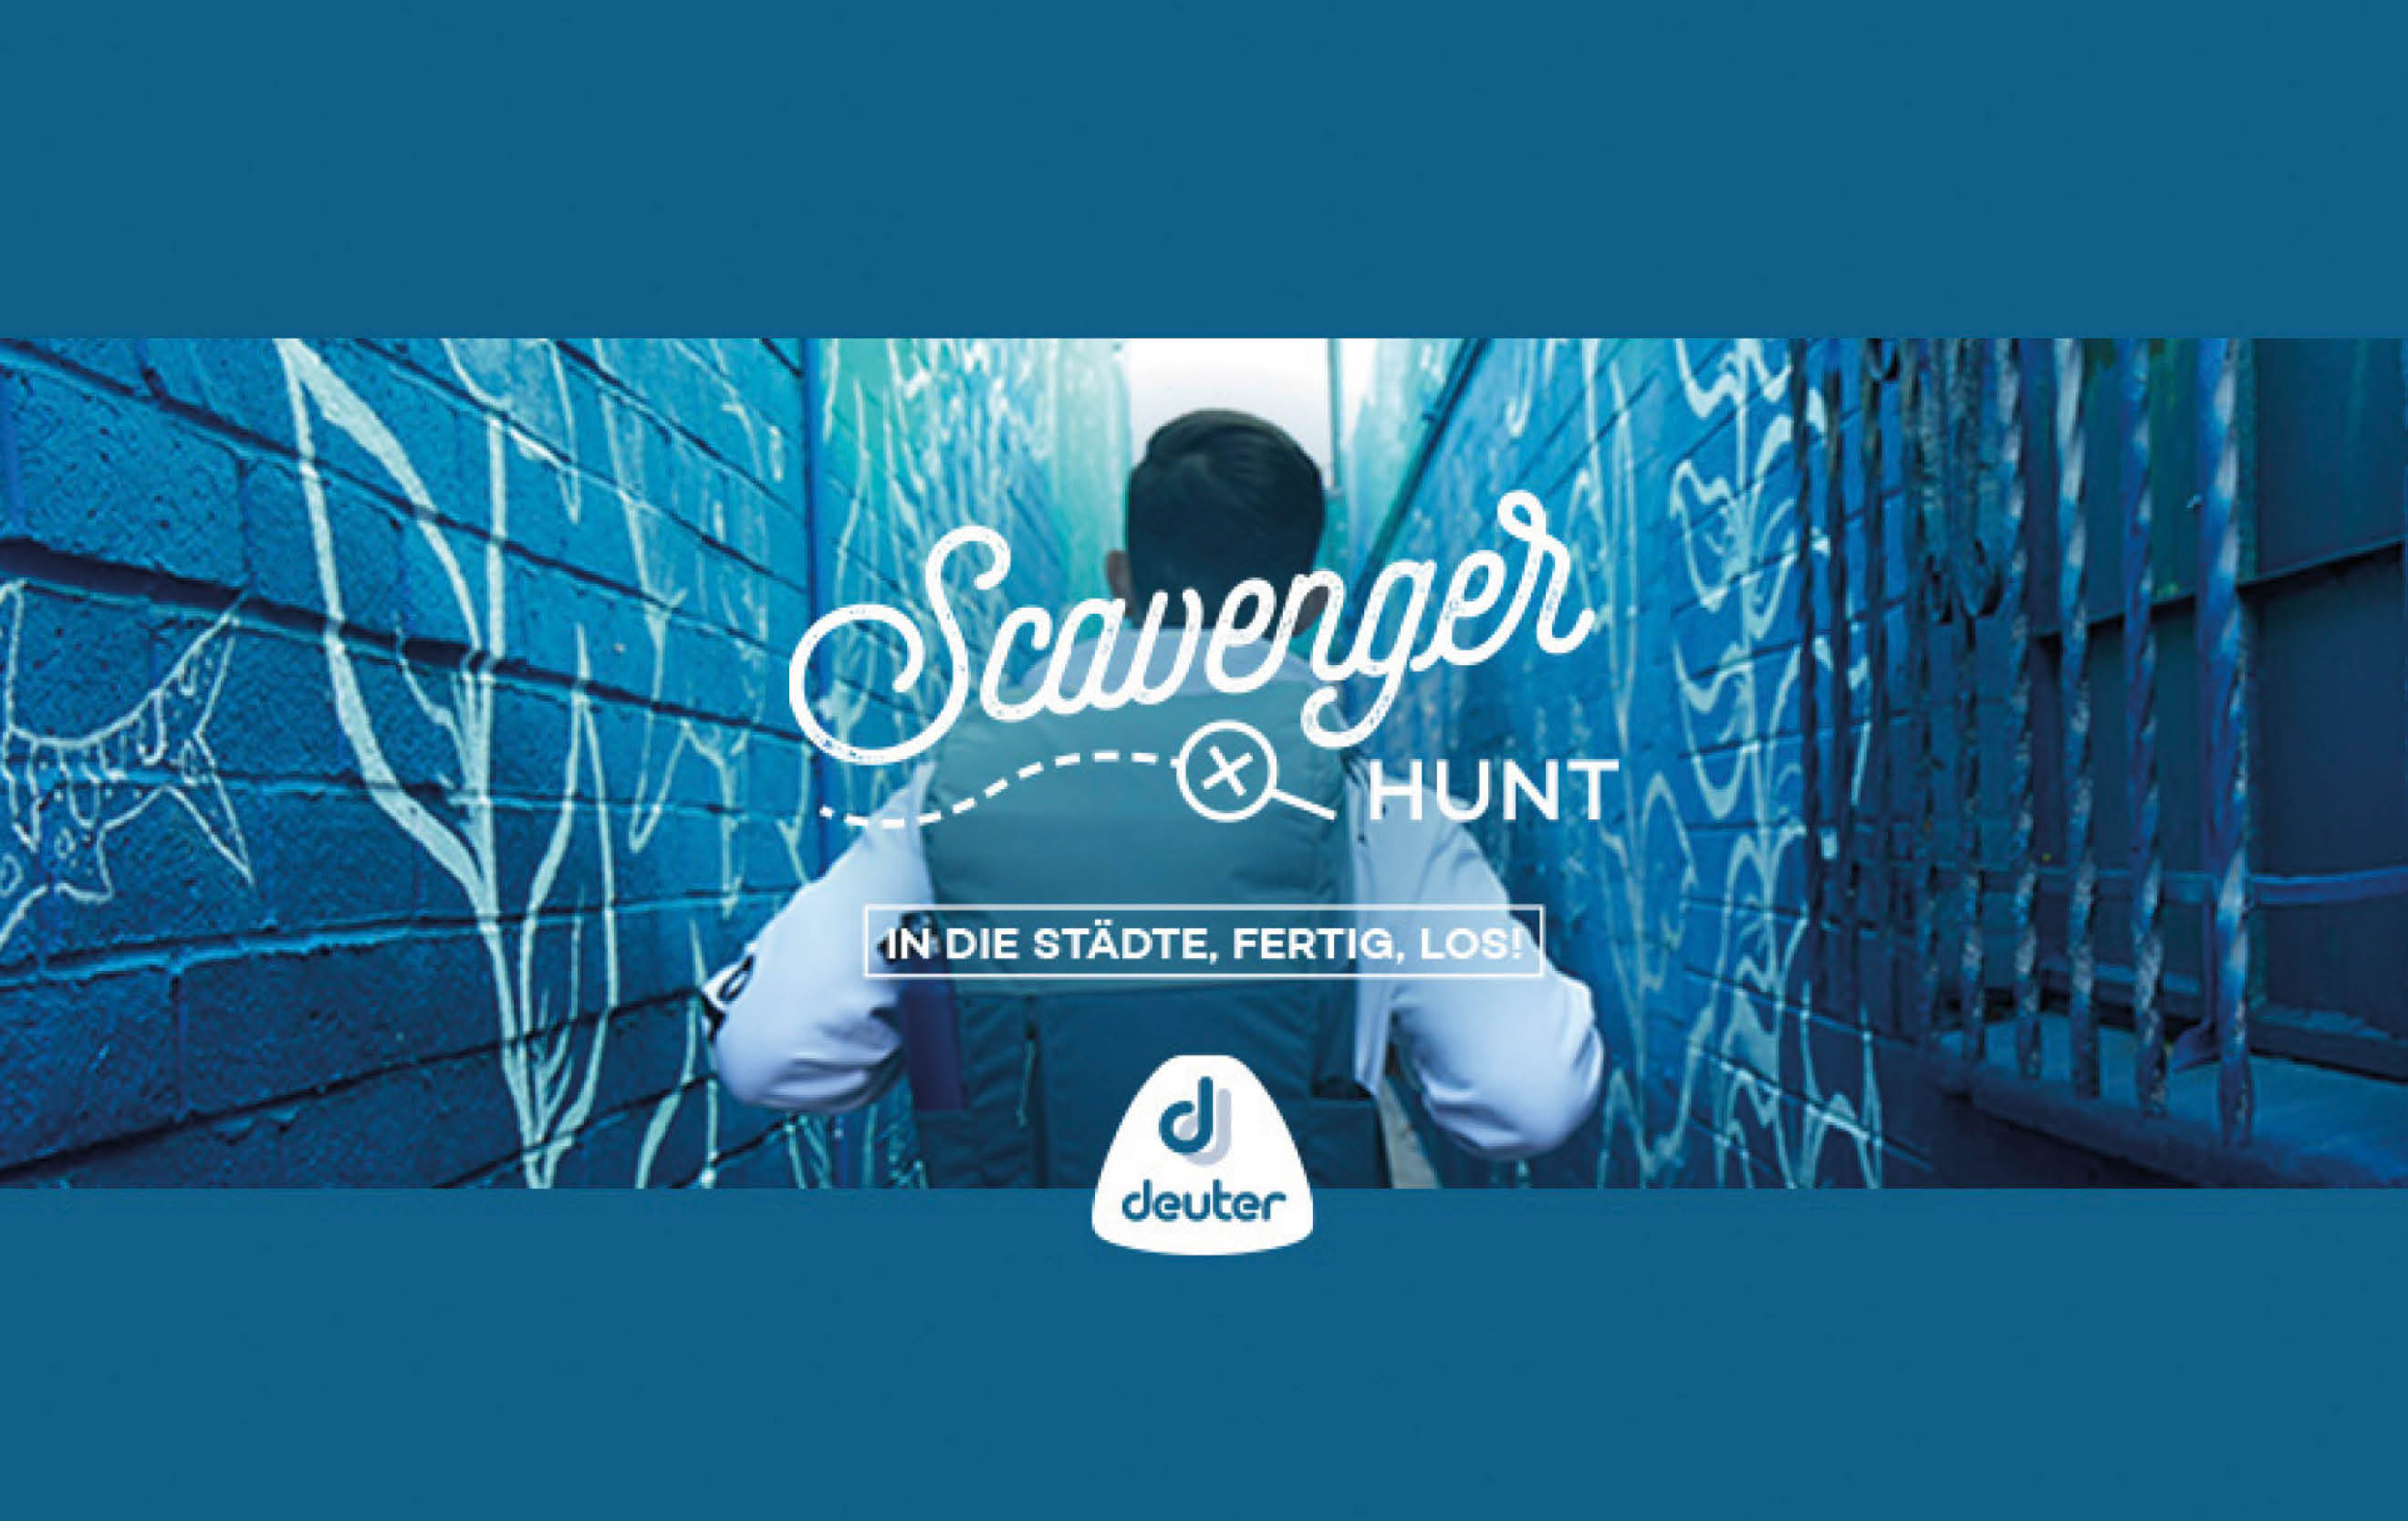 Deuter Scavenger Hunt